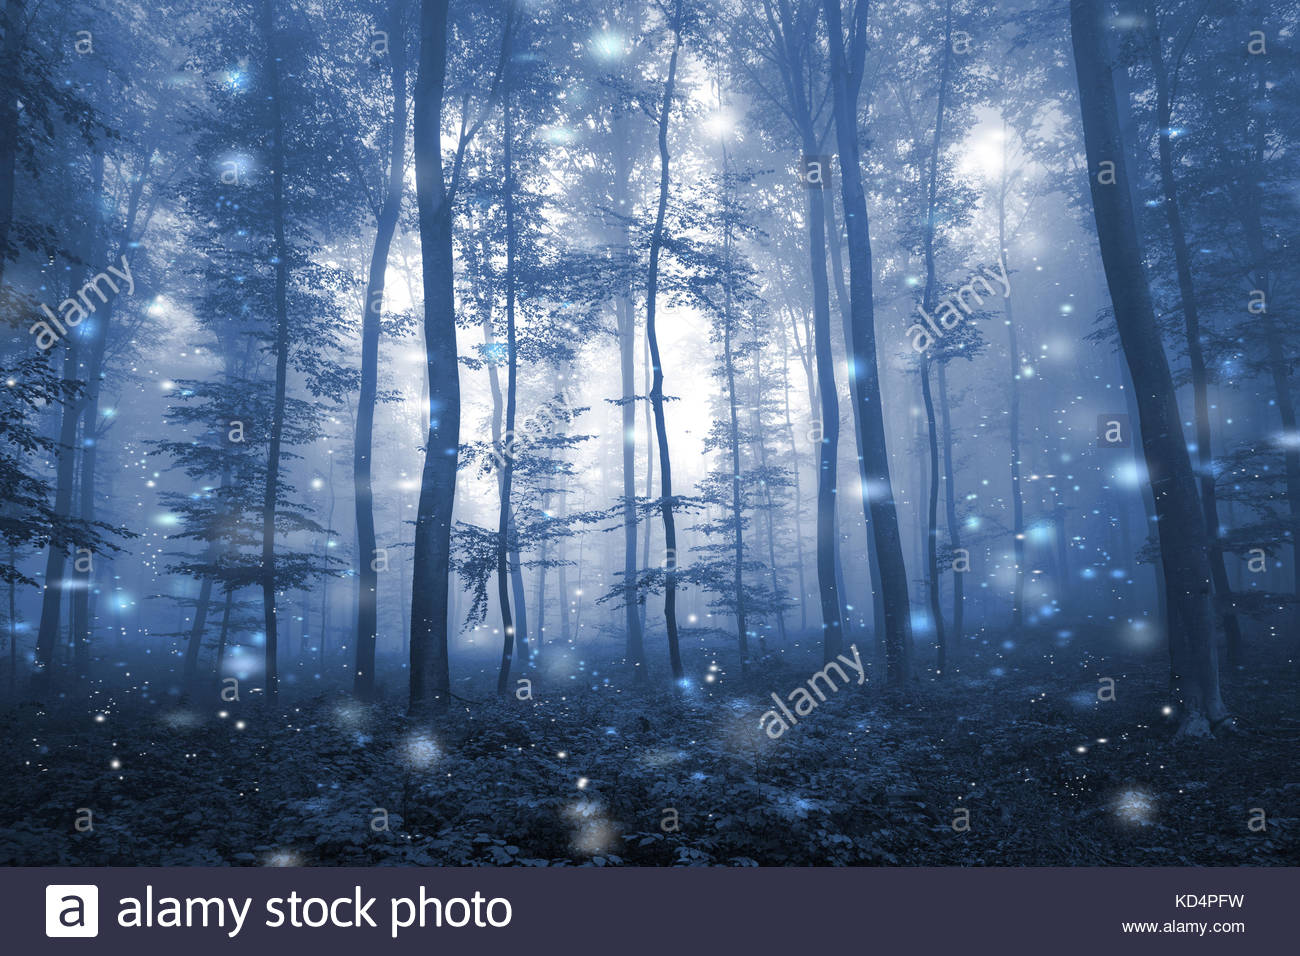 Artistic blue color foggy forest tree fairytale landscape with abstract fireflies. - Stock Image